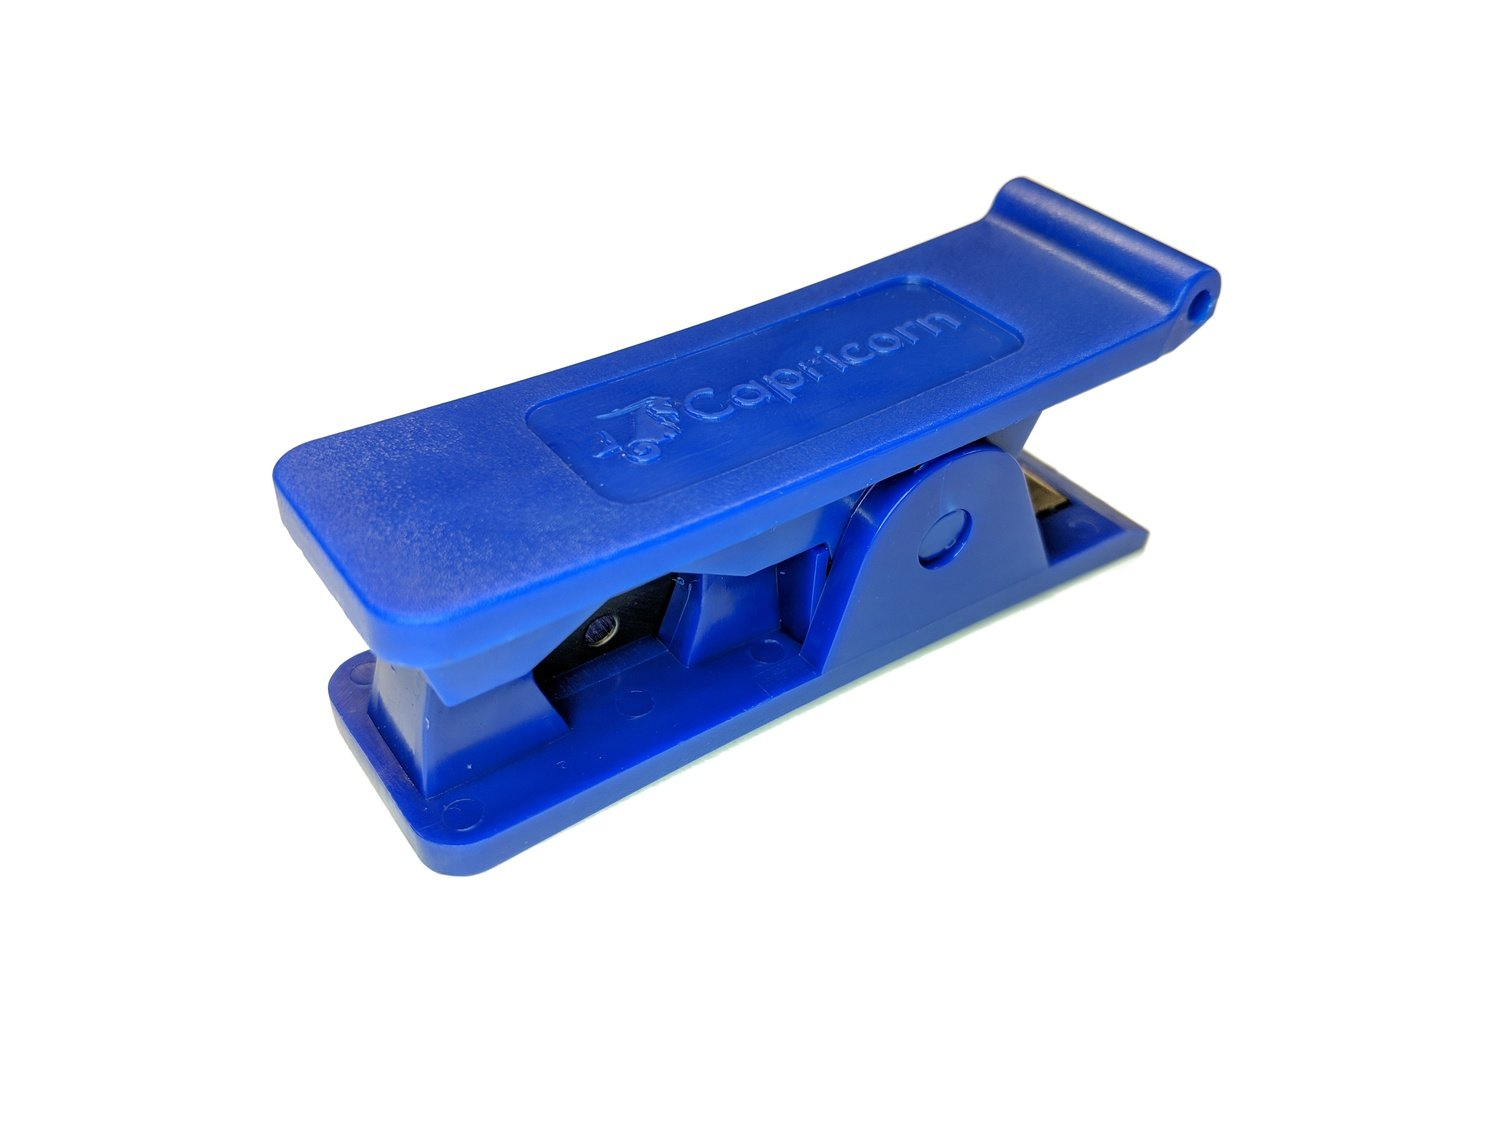 Capricorn PTFE tube cutter